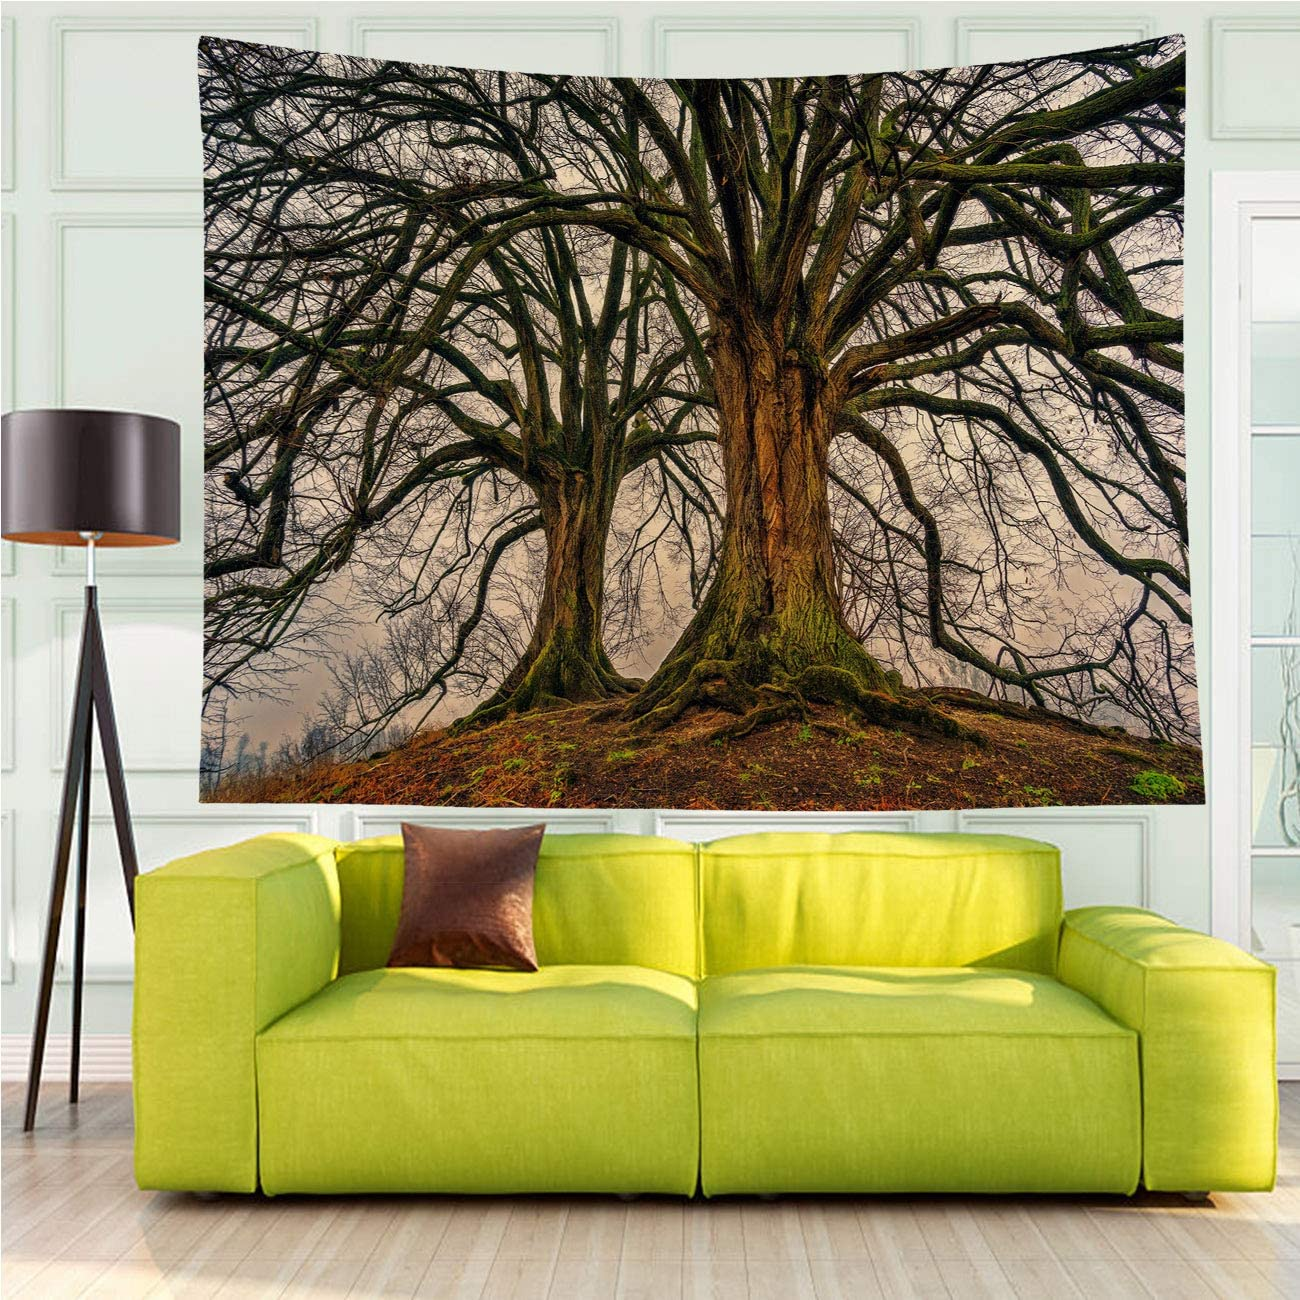 MinGz Wall Hanging Tapestry Versatile,Tree Nature Wood Aesthetic Deciduous Double Moss Structure Old Green Brown,Tapestry for Living Room Bedroom Dorm Home Decor,70x50 in